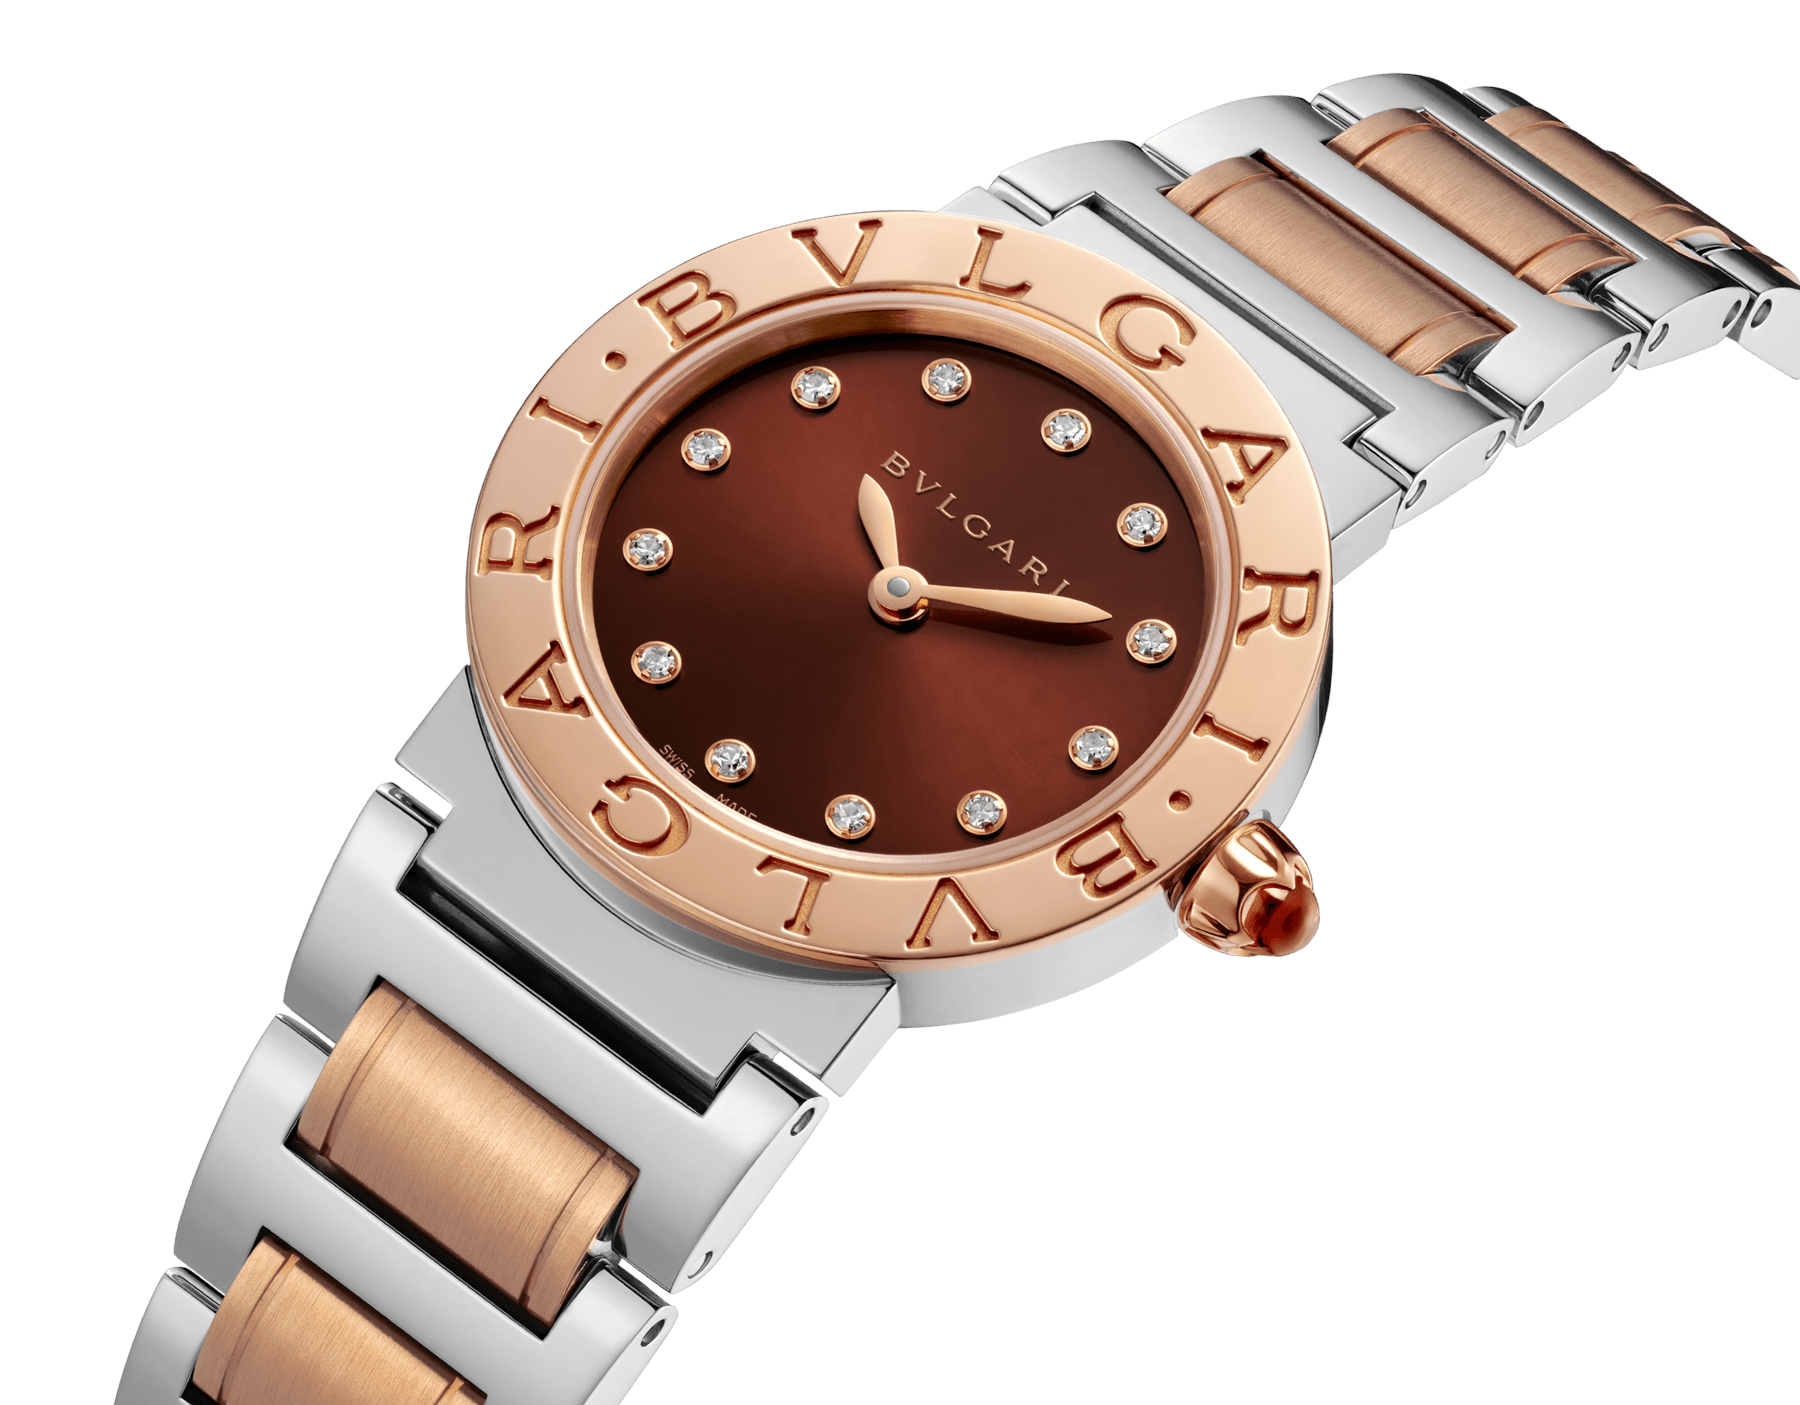 BVLGARI BVLGARI watch in stainless steel and 18 kt rose gold case and bracelet, with brown soleil lacquered dial and diamond indexes. Small model 102155 image 2